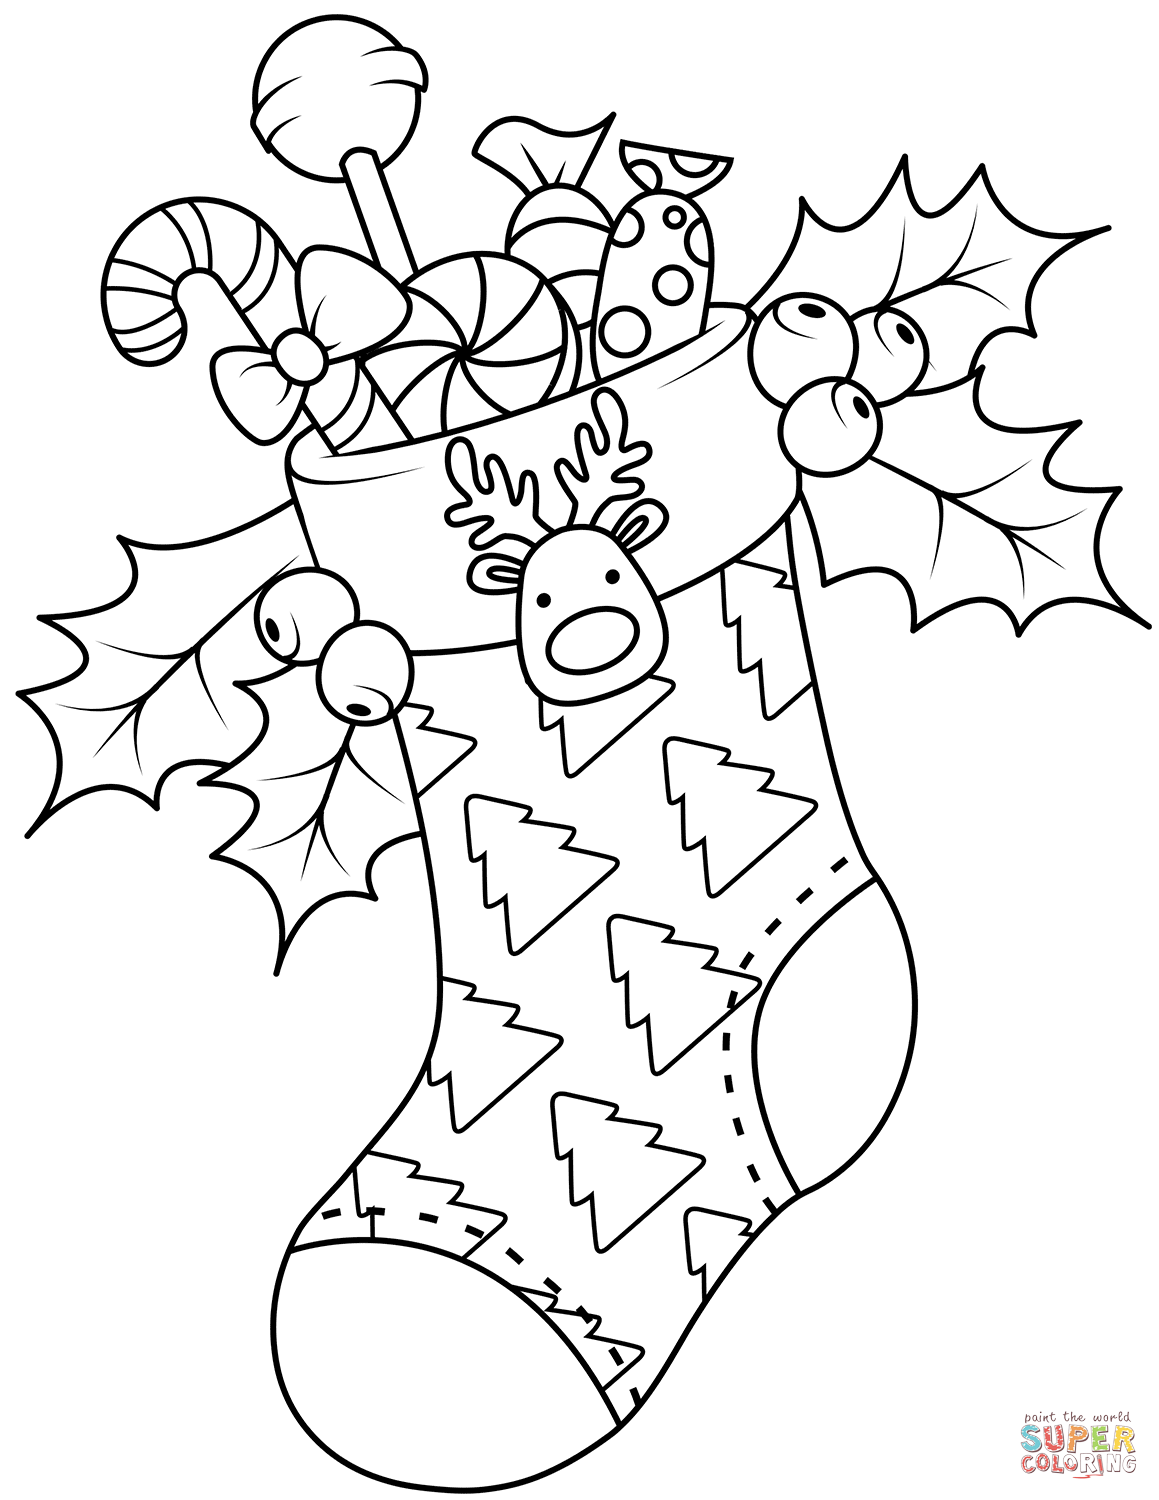 Christmas Stocking Coloring Pages For Adults With Stockings Free